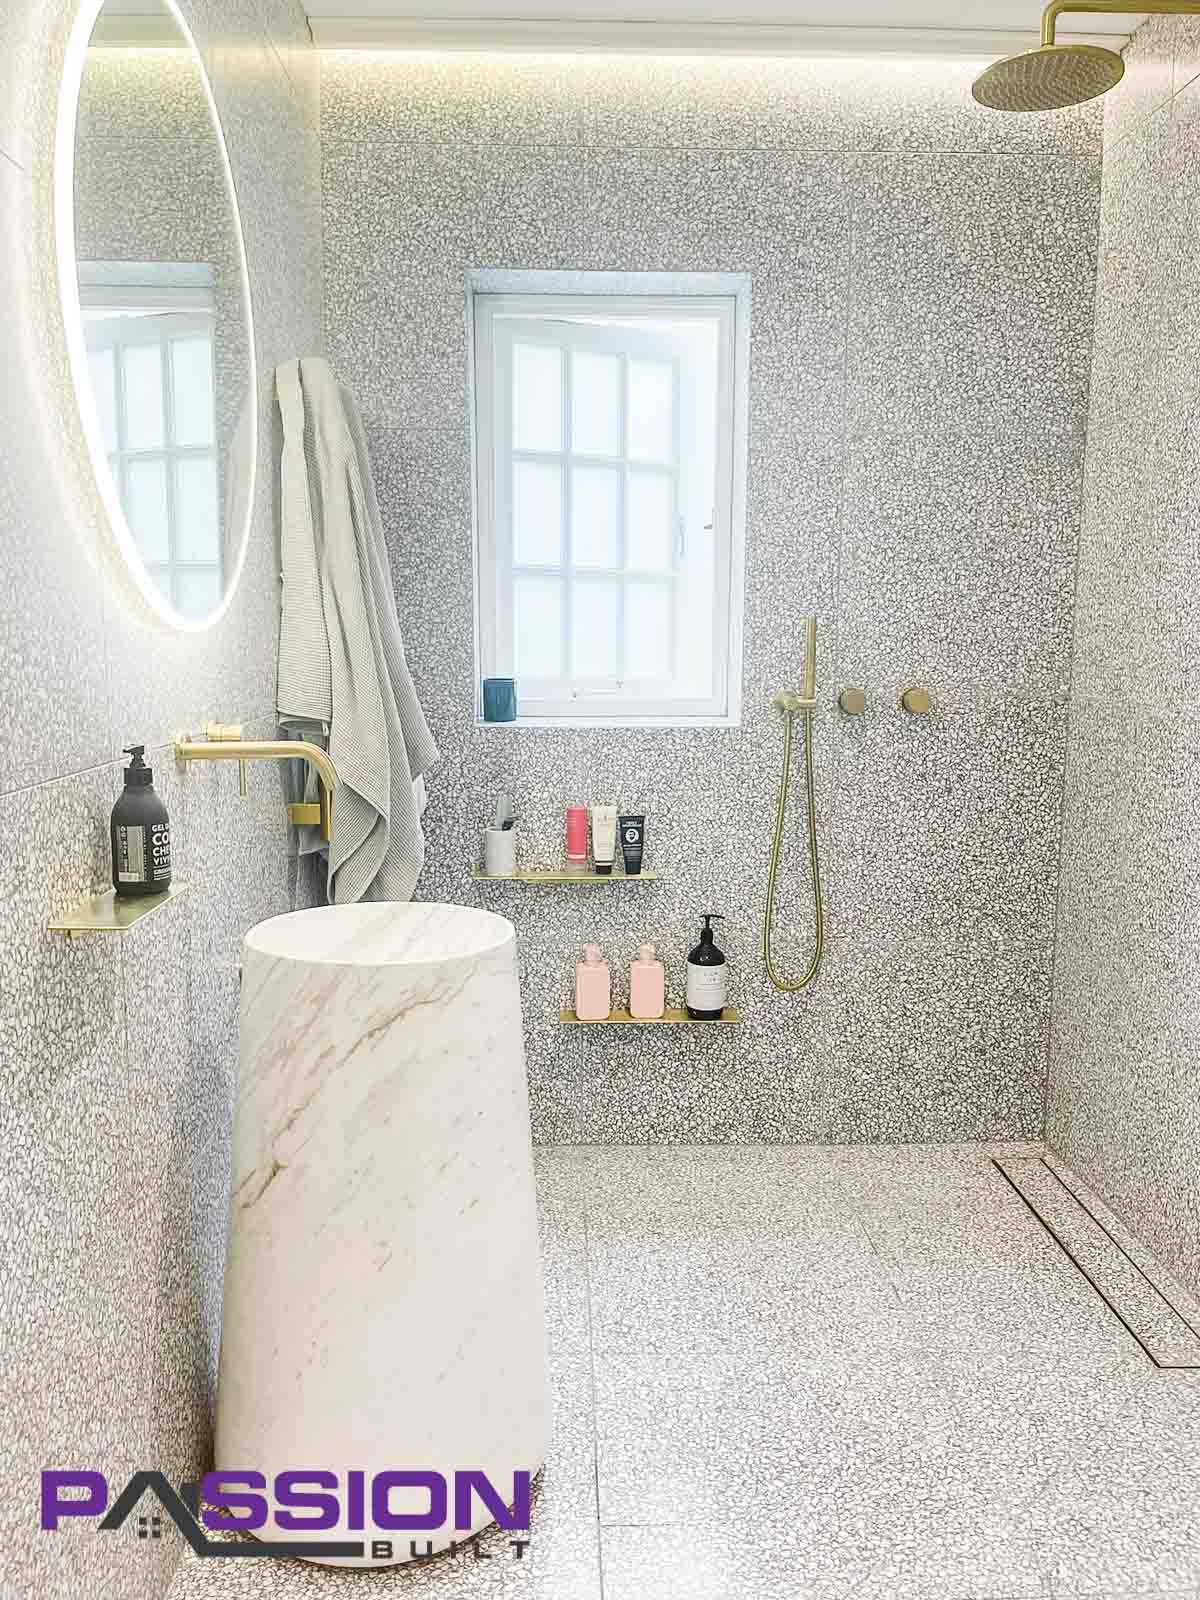 Passion-Built-Sydney-renovator-for-small-bathrooms-in-units